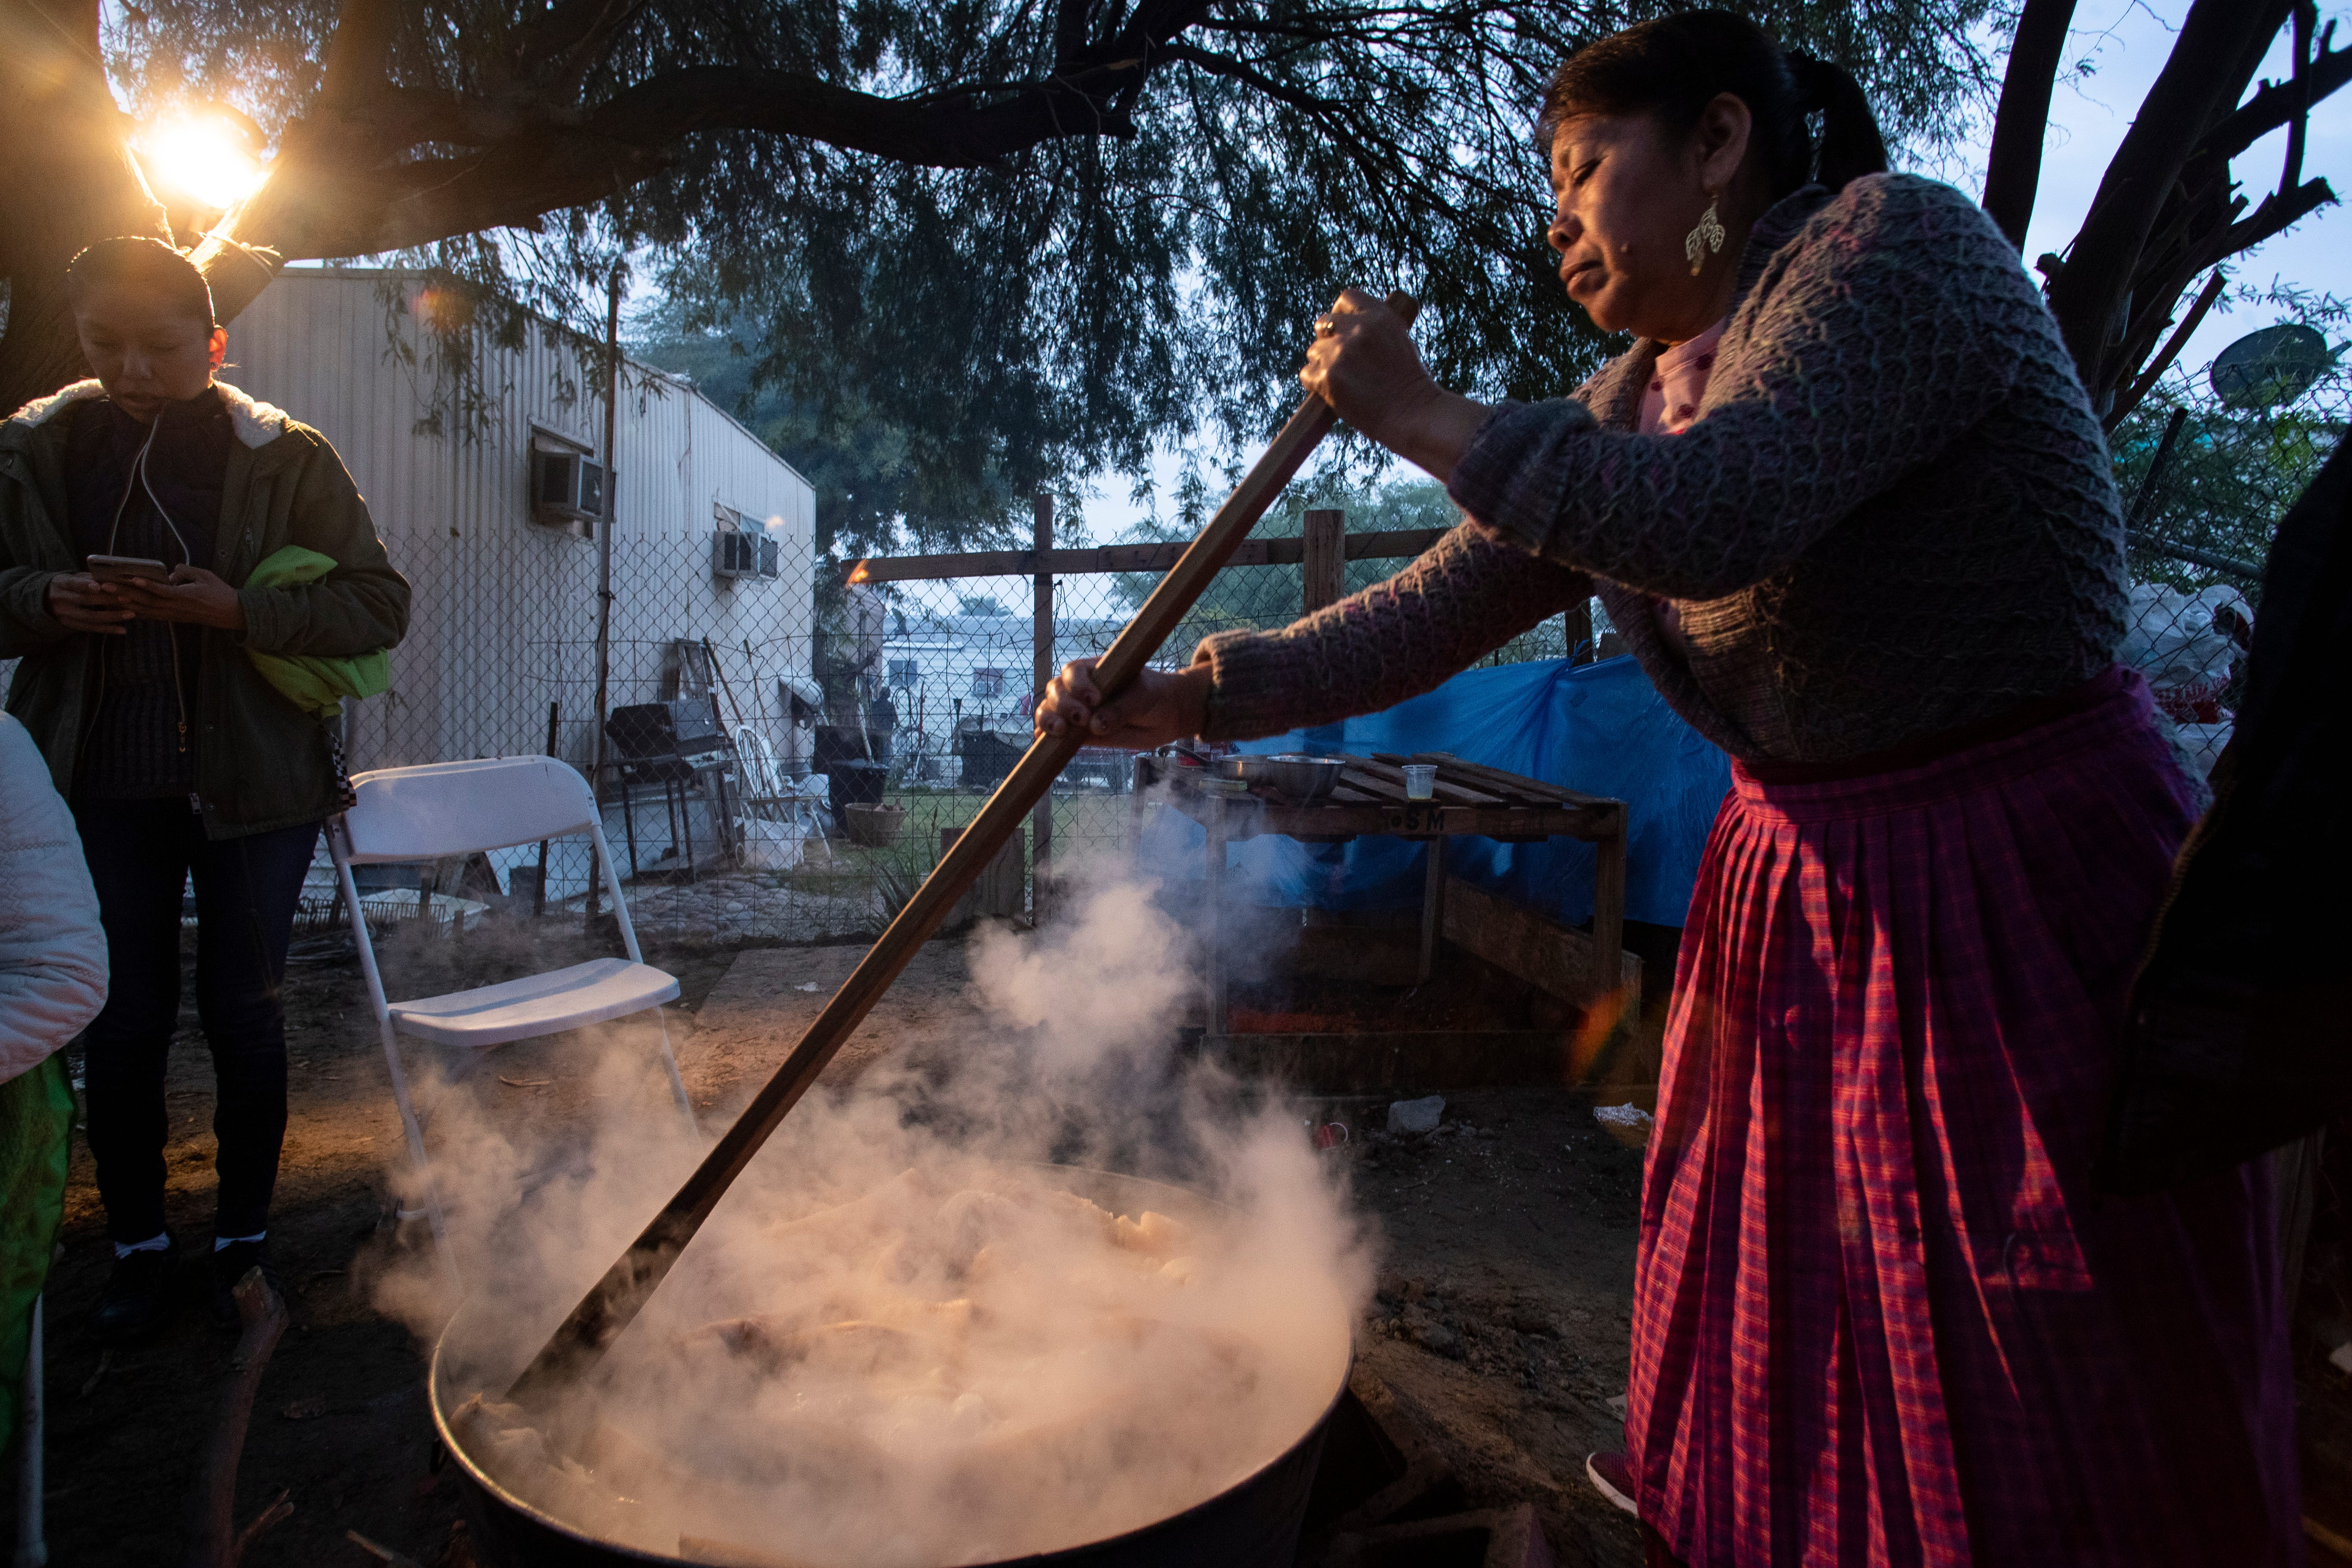 Florinda Serano begins preparing food at the break of dawn on Dec. 10, 2019, to feed the Purépecha community in Thermal, Calif. The community will gather to celebrate the Virgin of Guadalupe festivities.